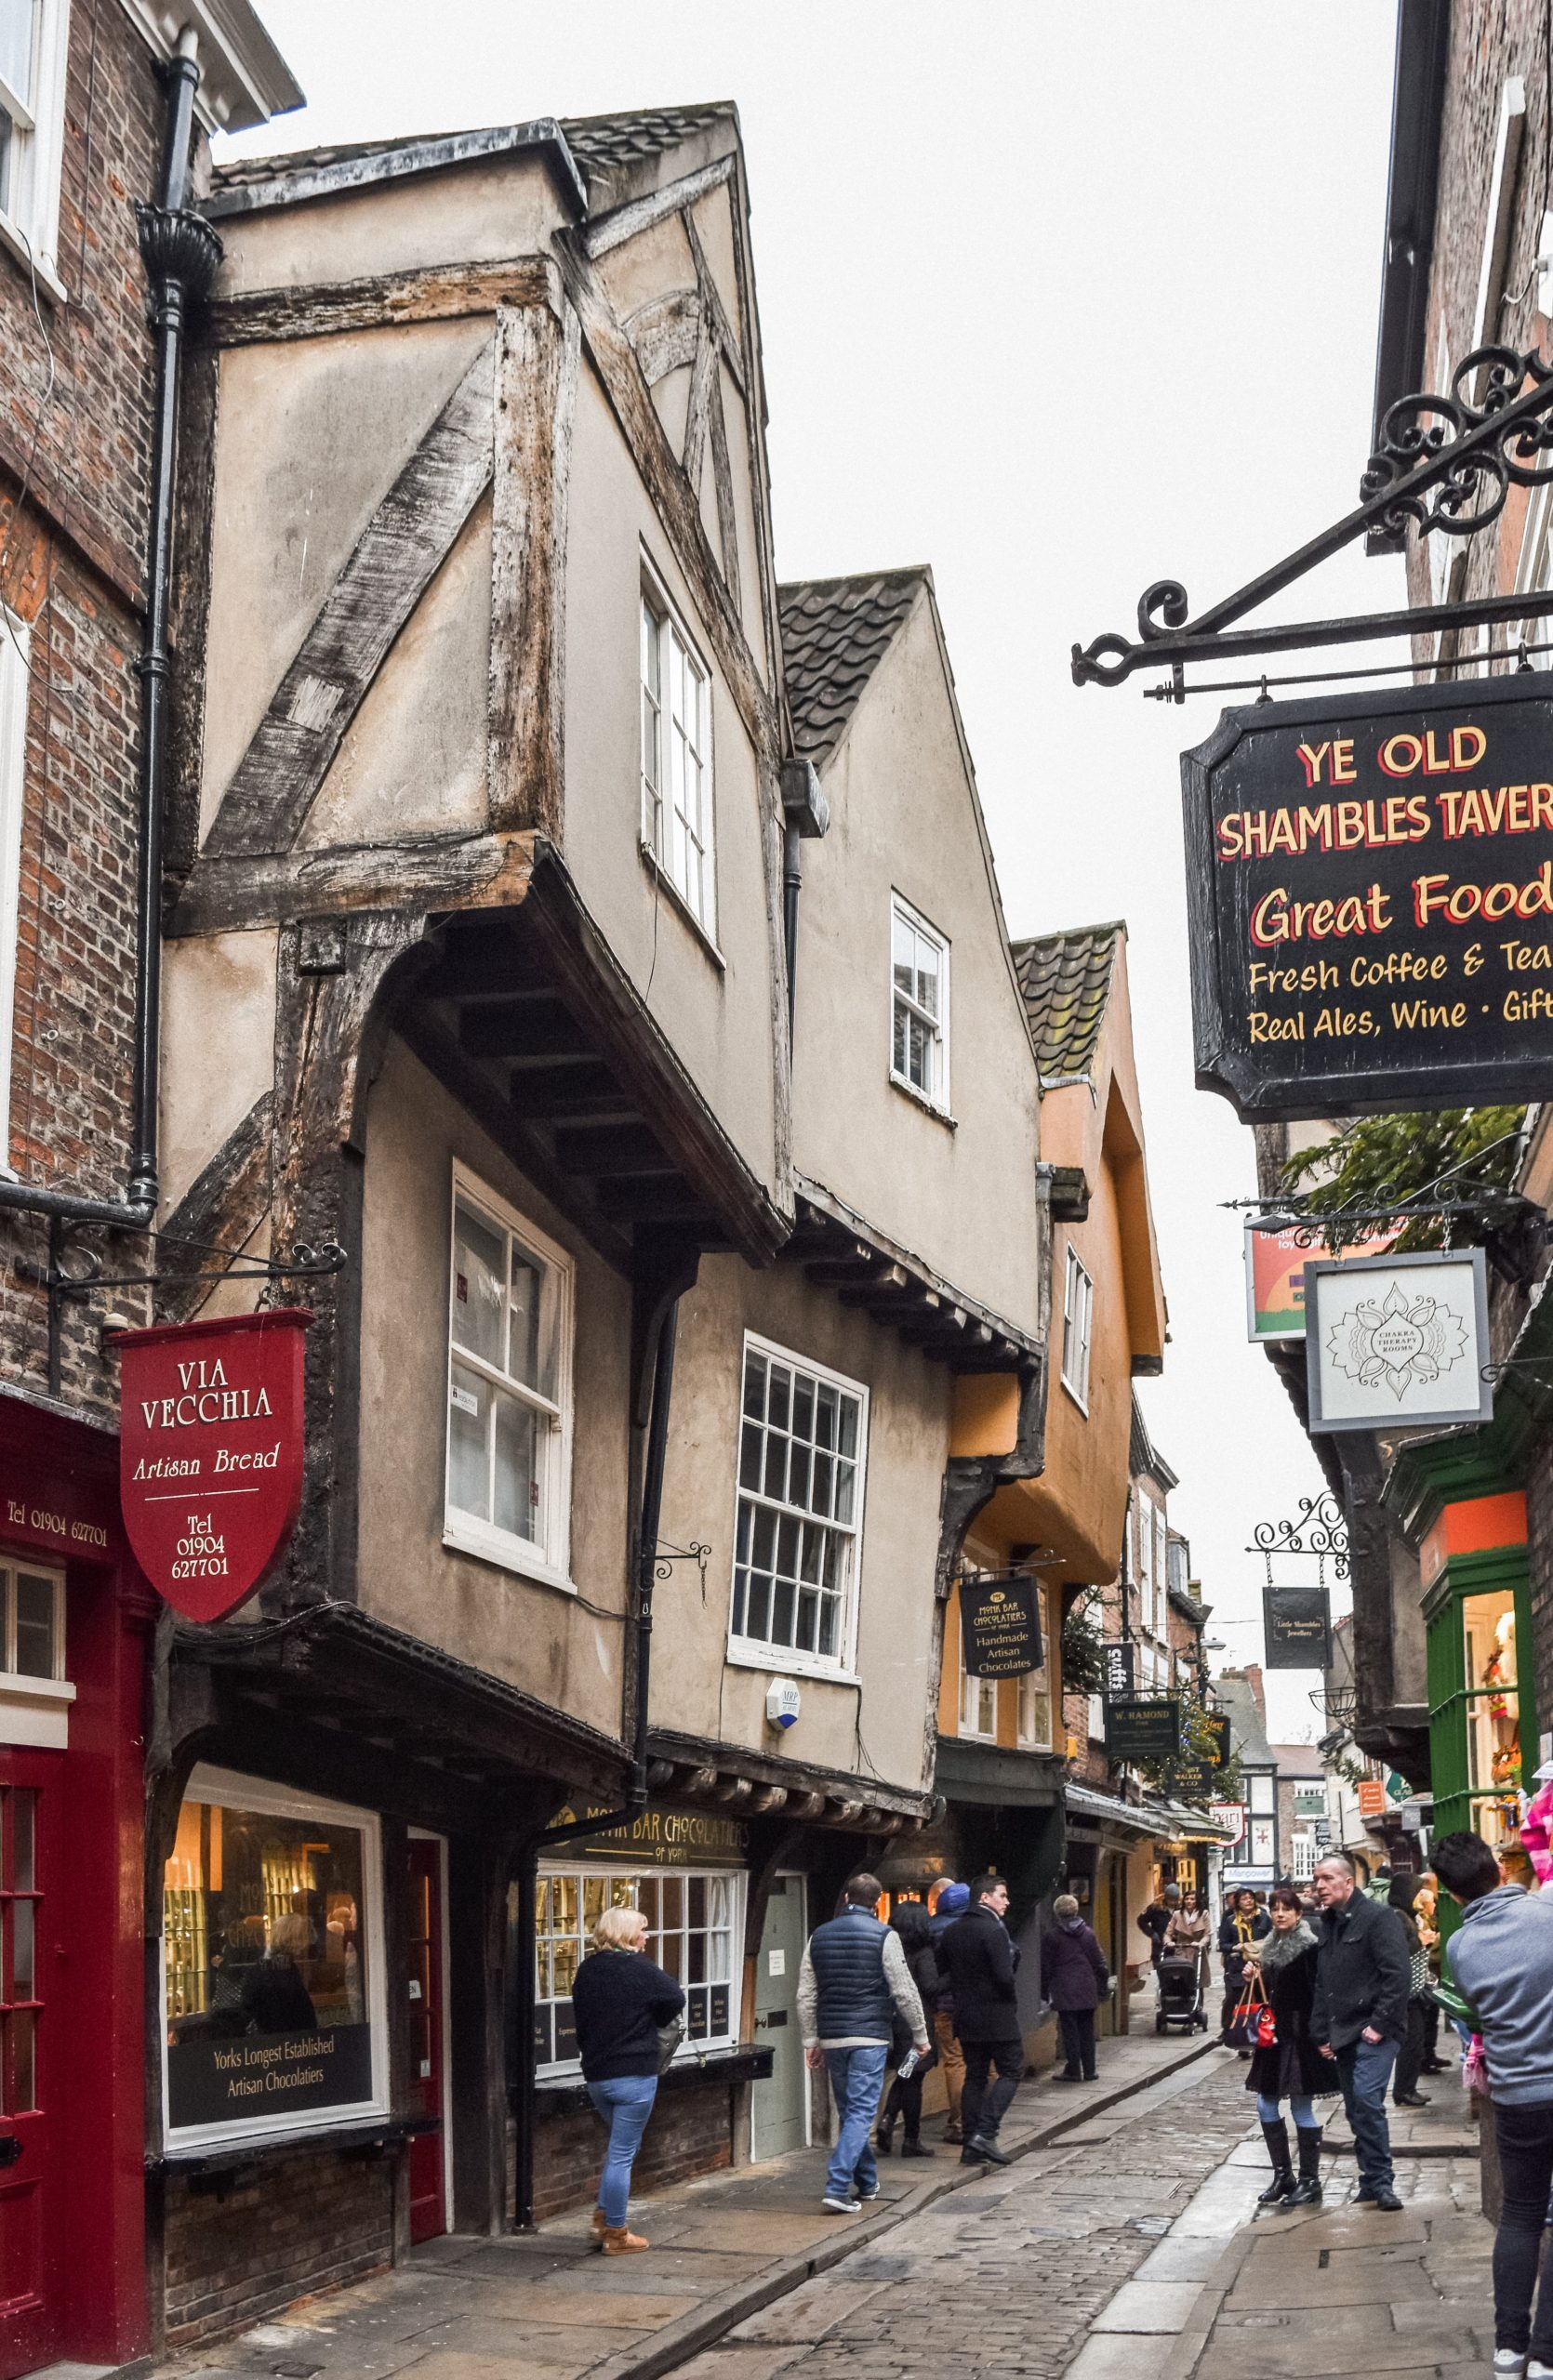 The Best Things To Do In York, England